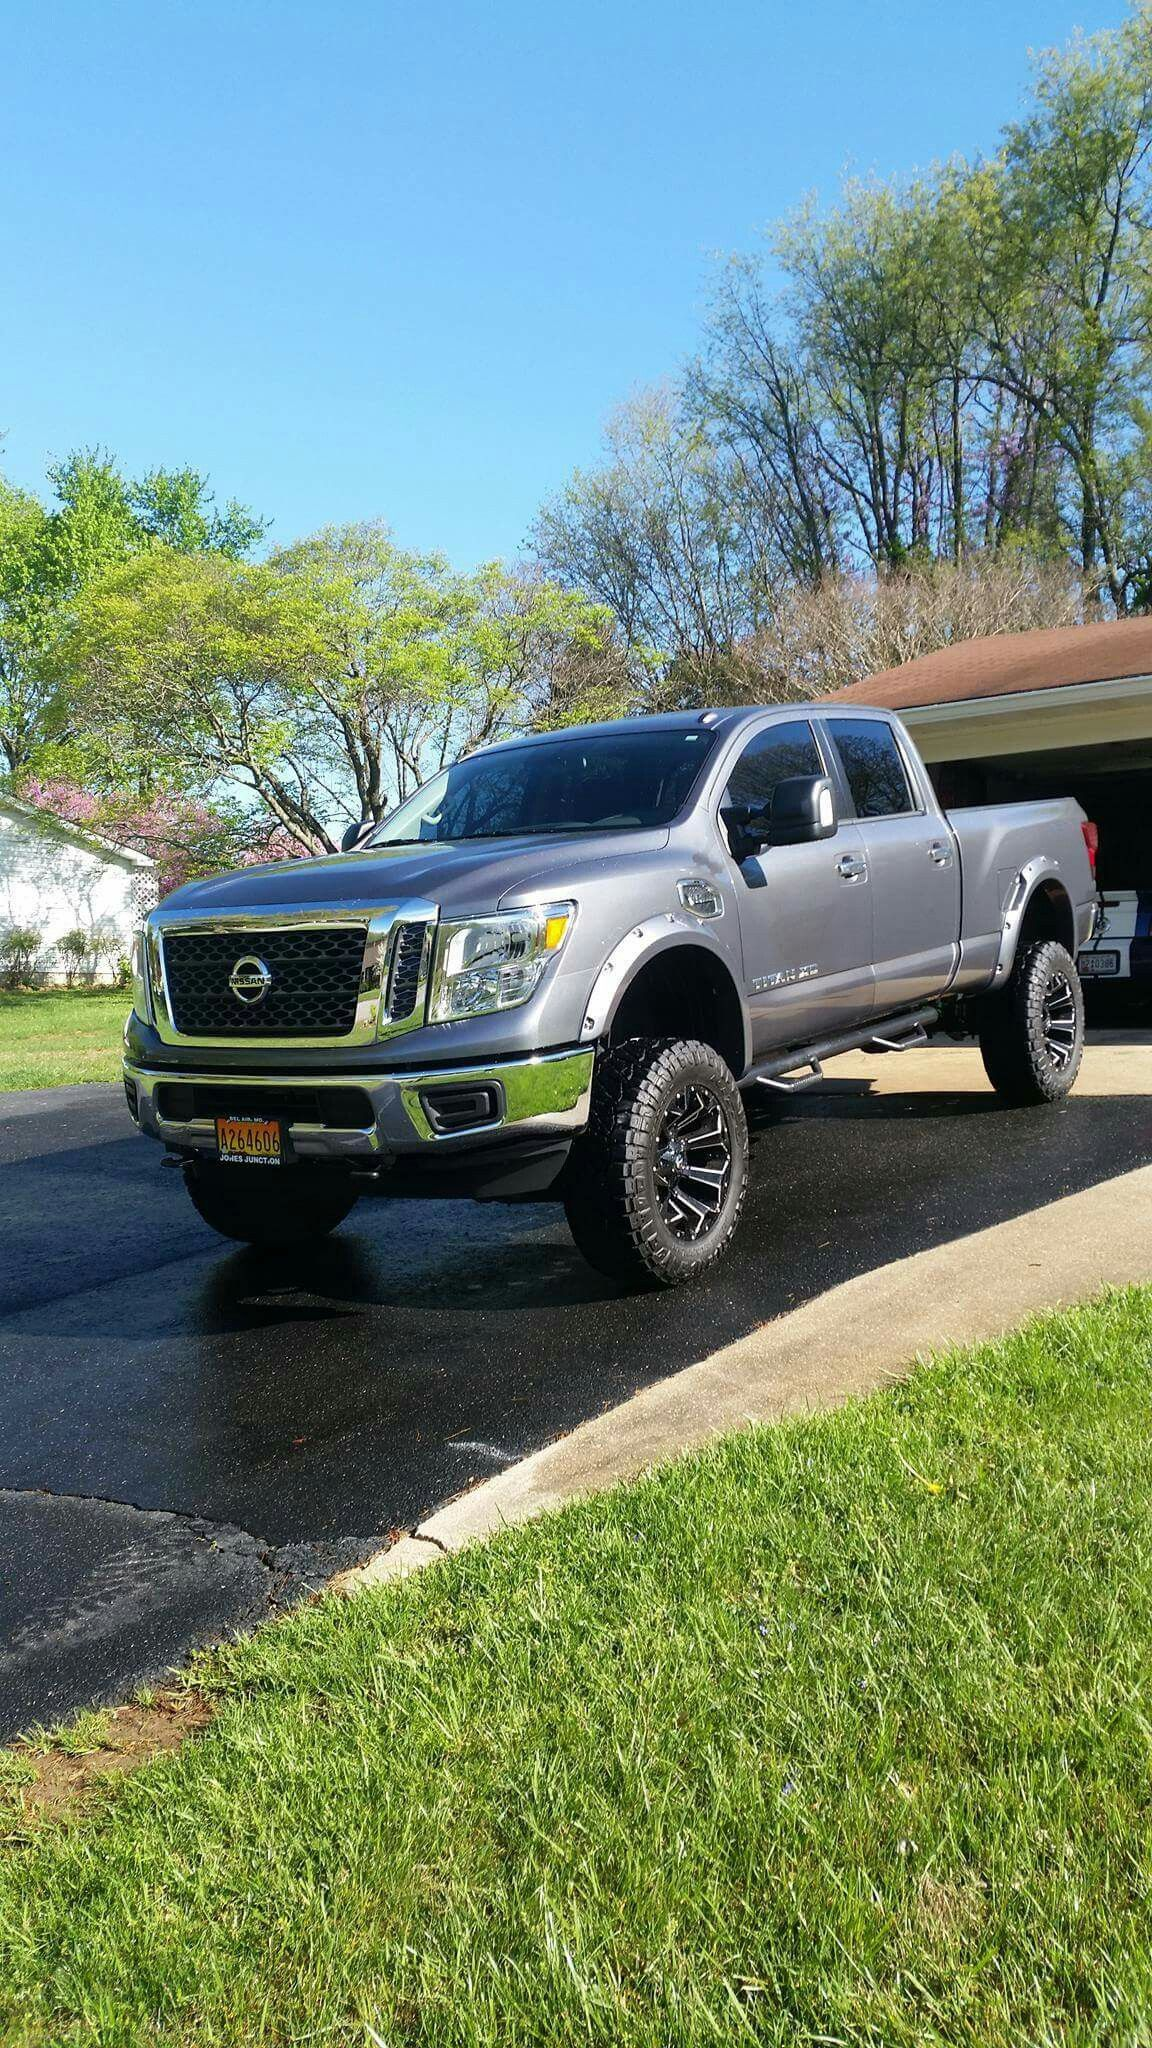 2016 nissan titan xd lifted lifted trucks that i would like to have pinterest 2016 nissan. Black Bedroom Furniture Sets. Home Design Ideas